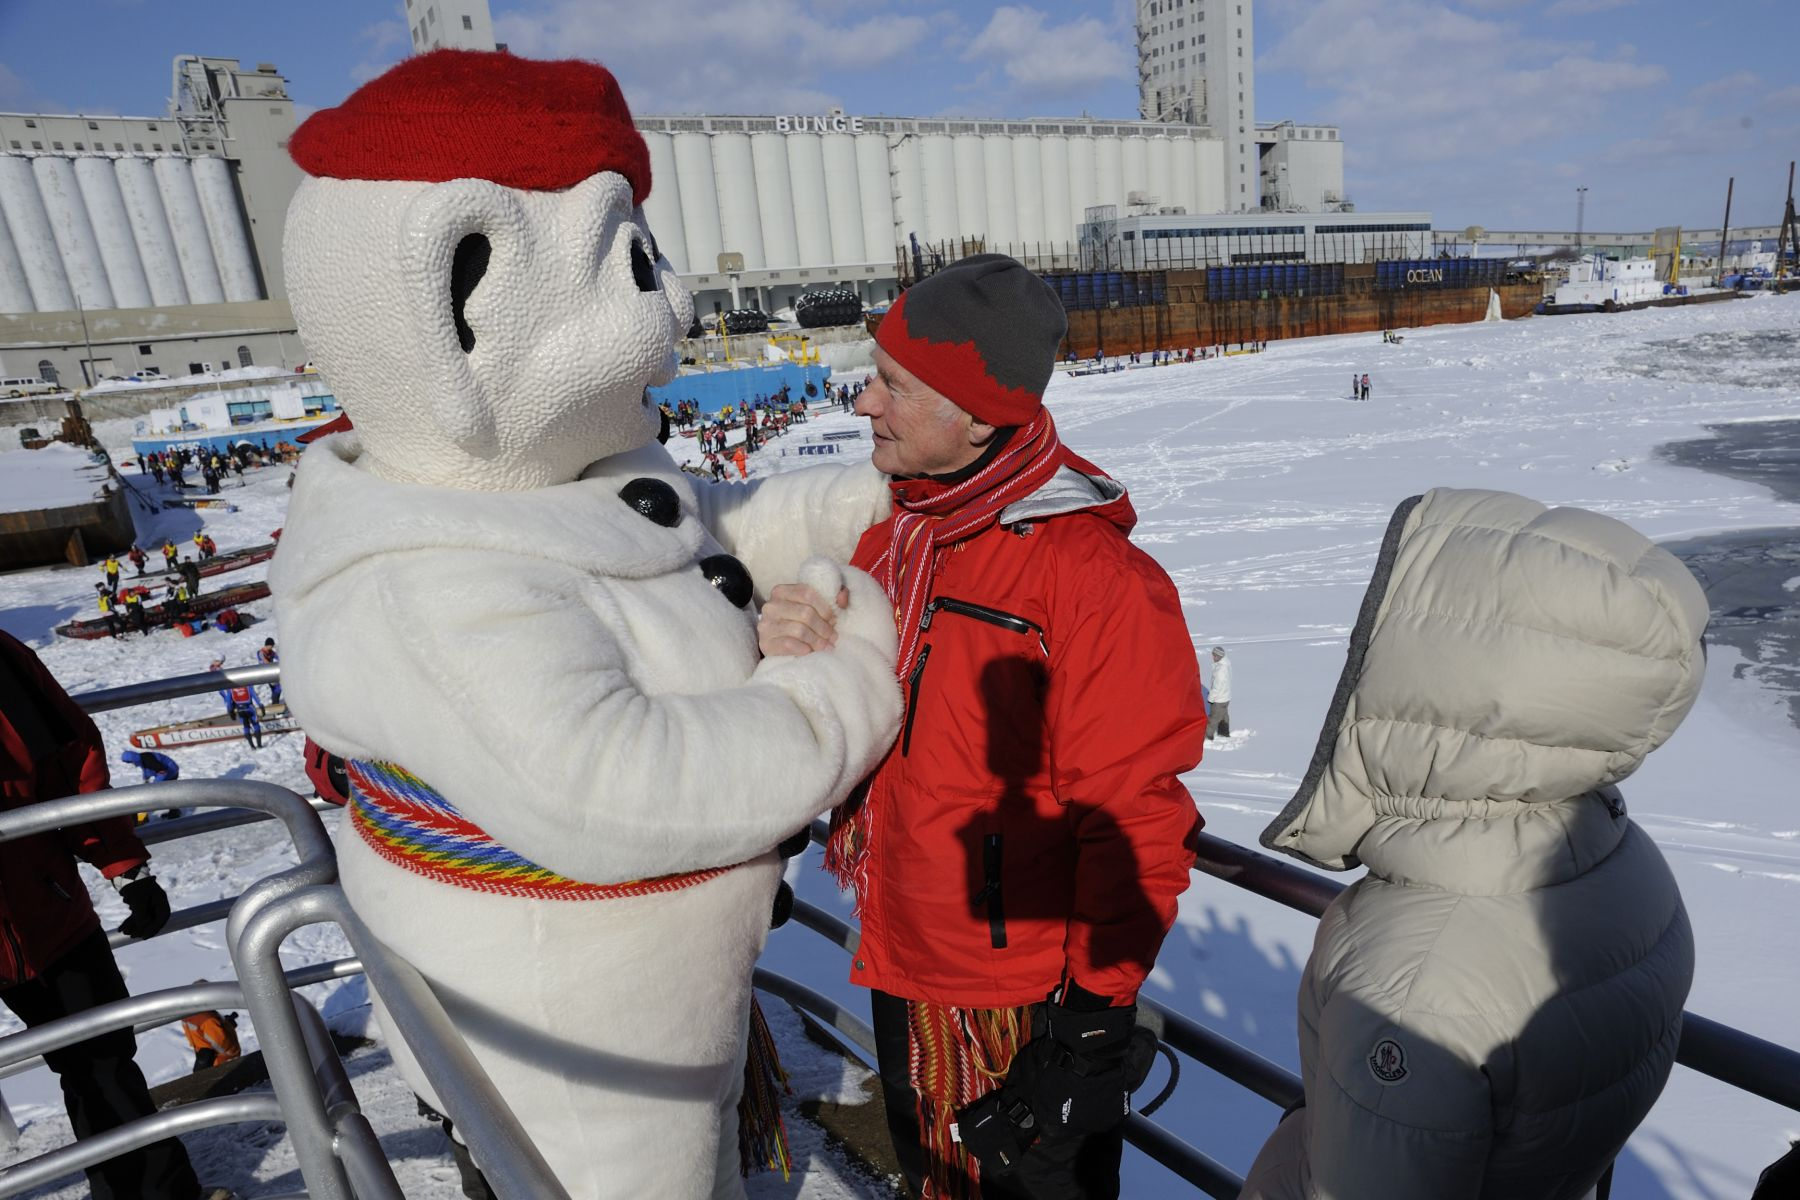 Bonhomme met with Their Excellencies to watch the race.